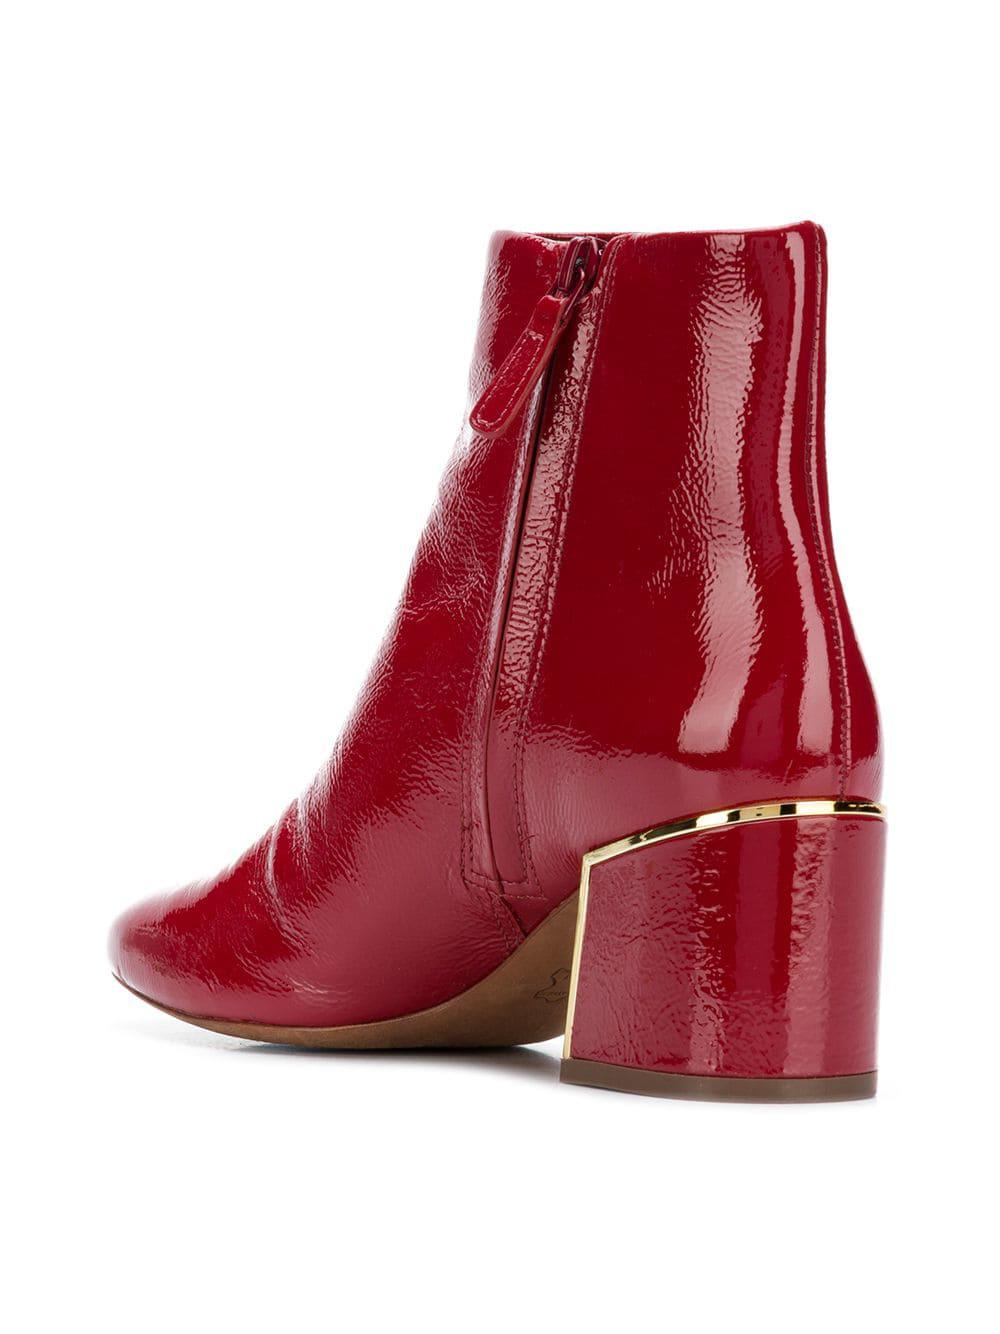 79f29f4d392 Tory Burch - Dark Redstone Juliana Booties - Lyst. View fullscreen